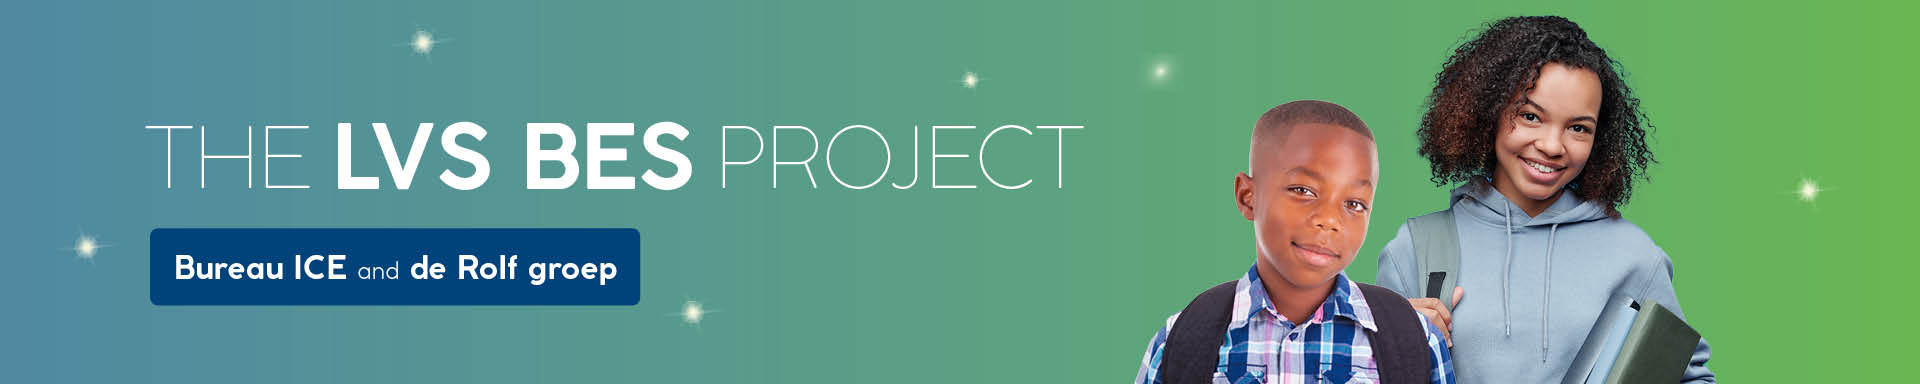 LVS BES project - ENG